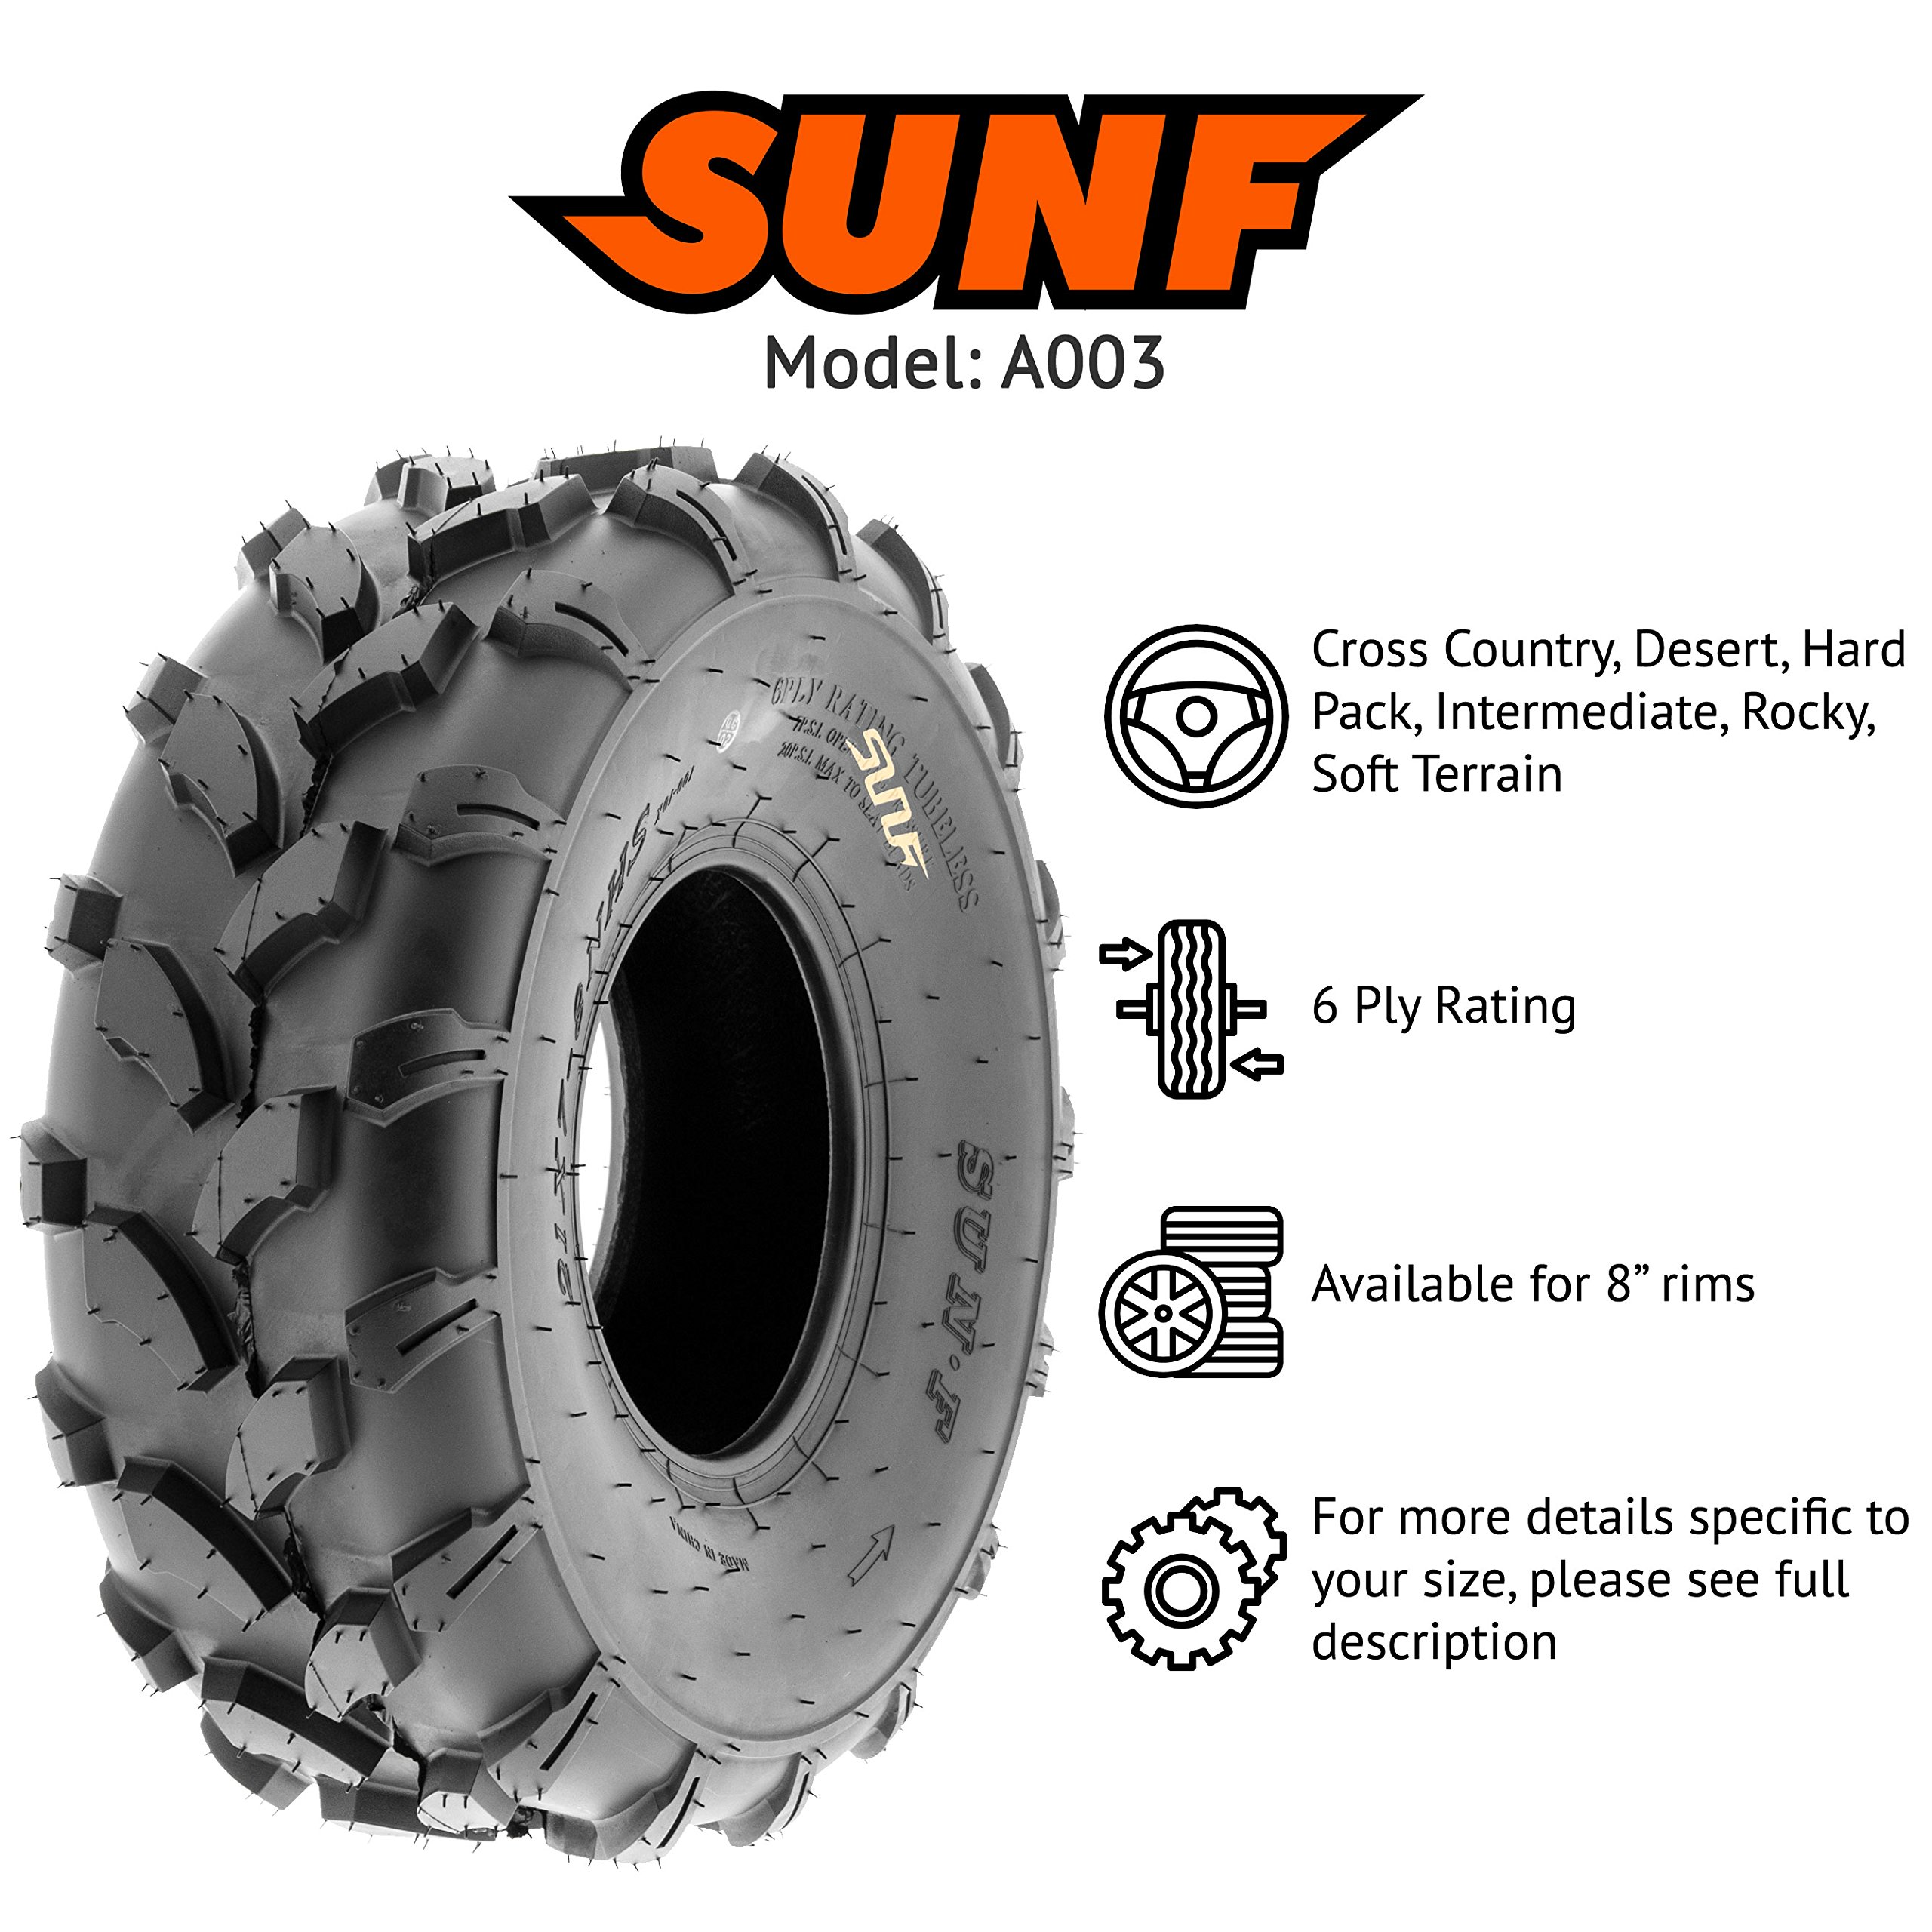 SunF 19x7-8 19x7x8 ATV UTV All Terrain Trail Replacement 6 PR Tubeless Tires A003, [Set of 2] by SUNF (Image #2)